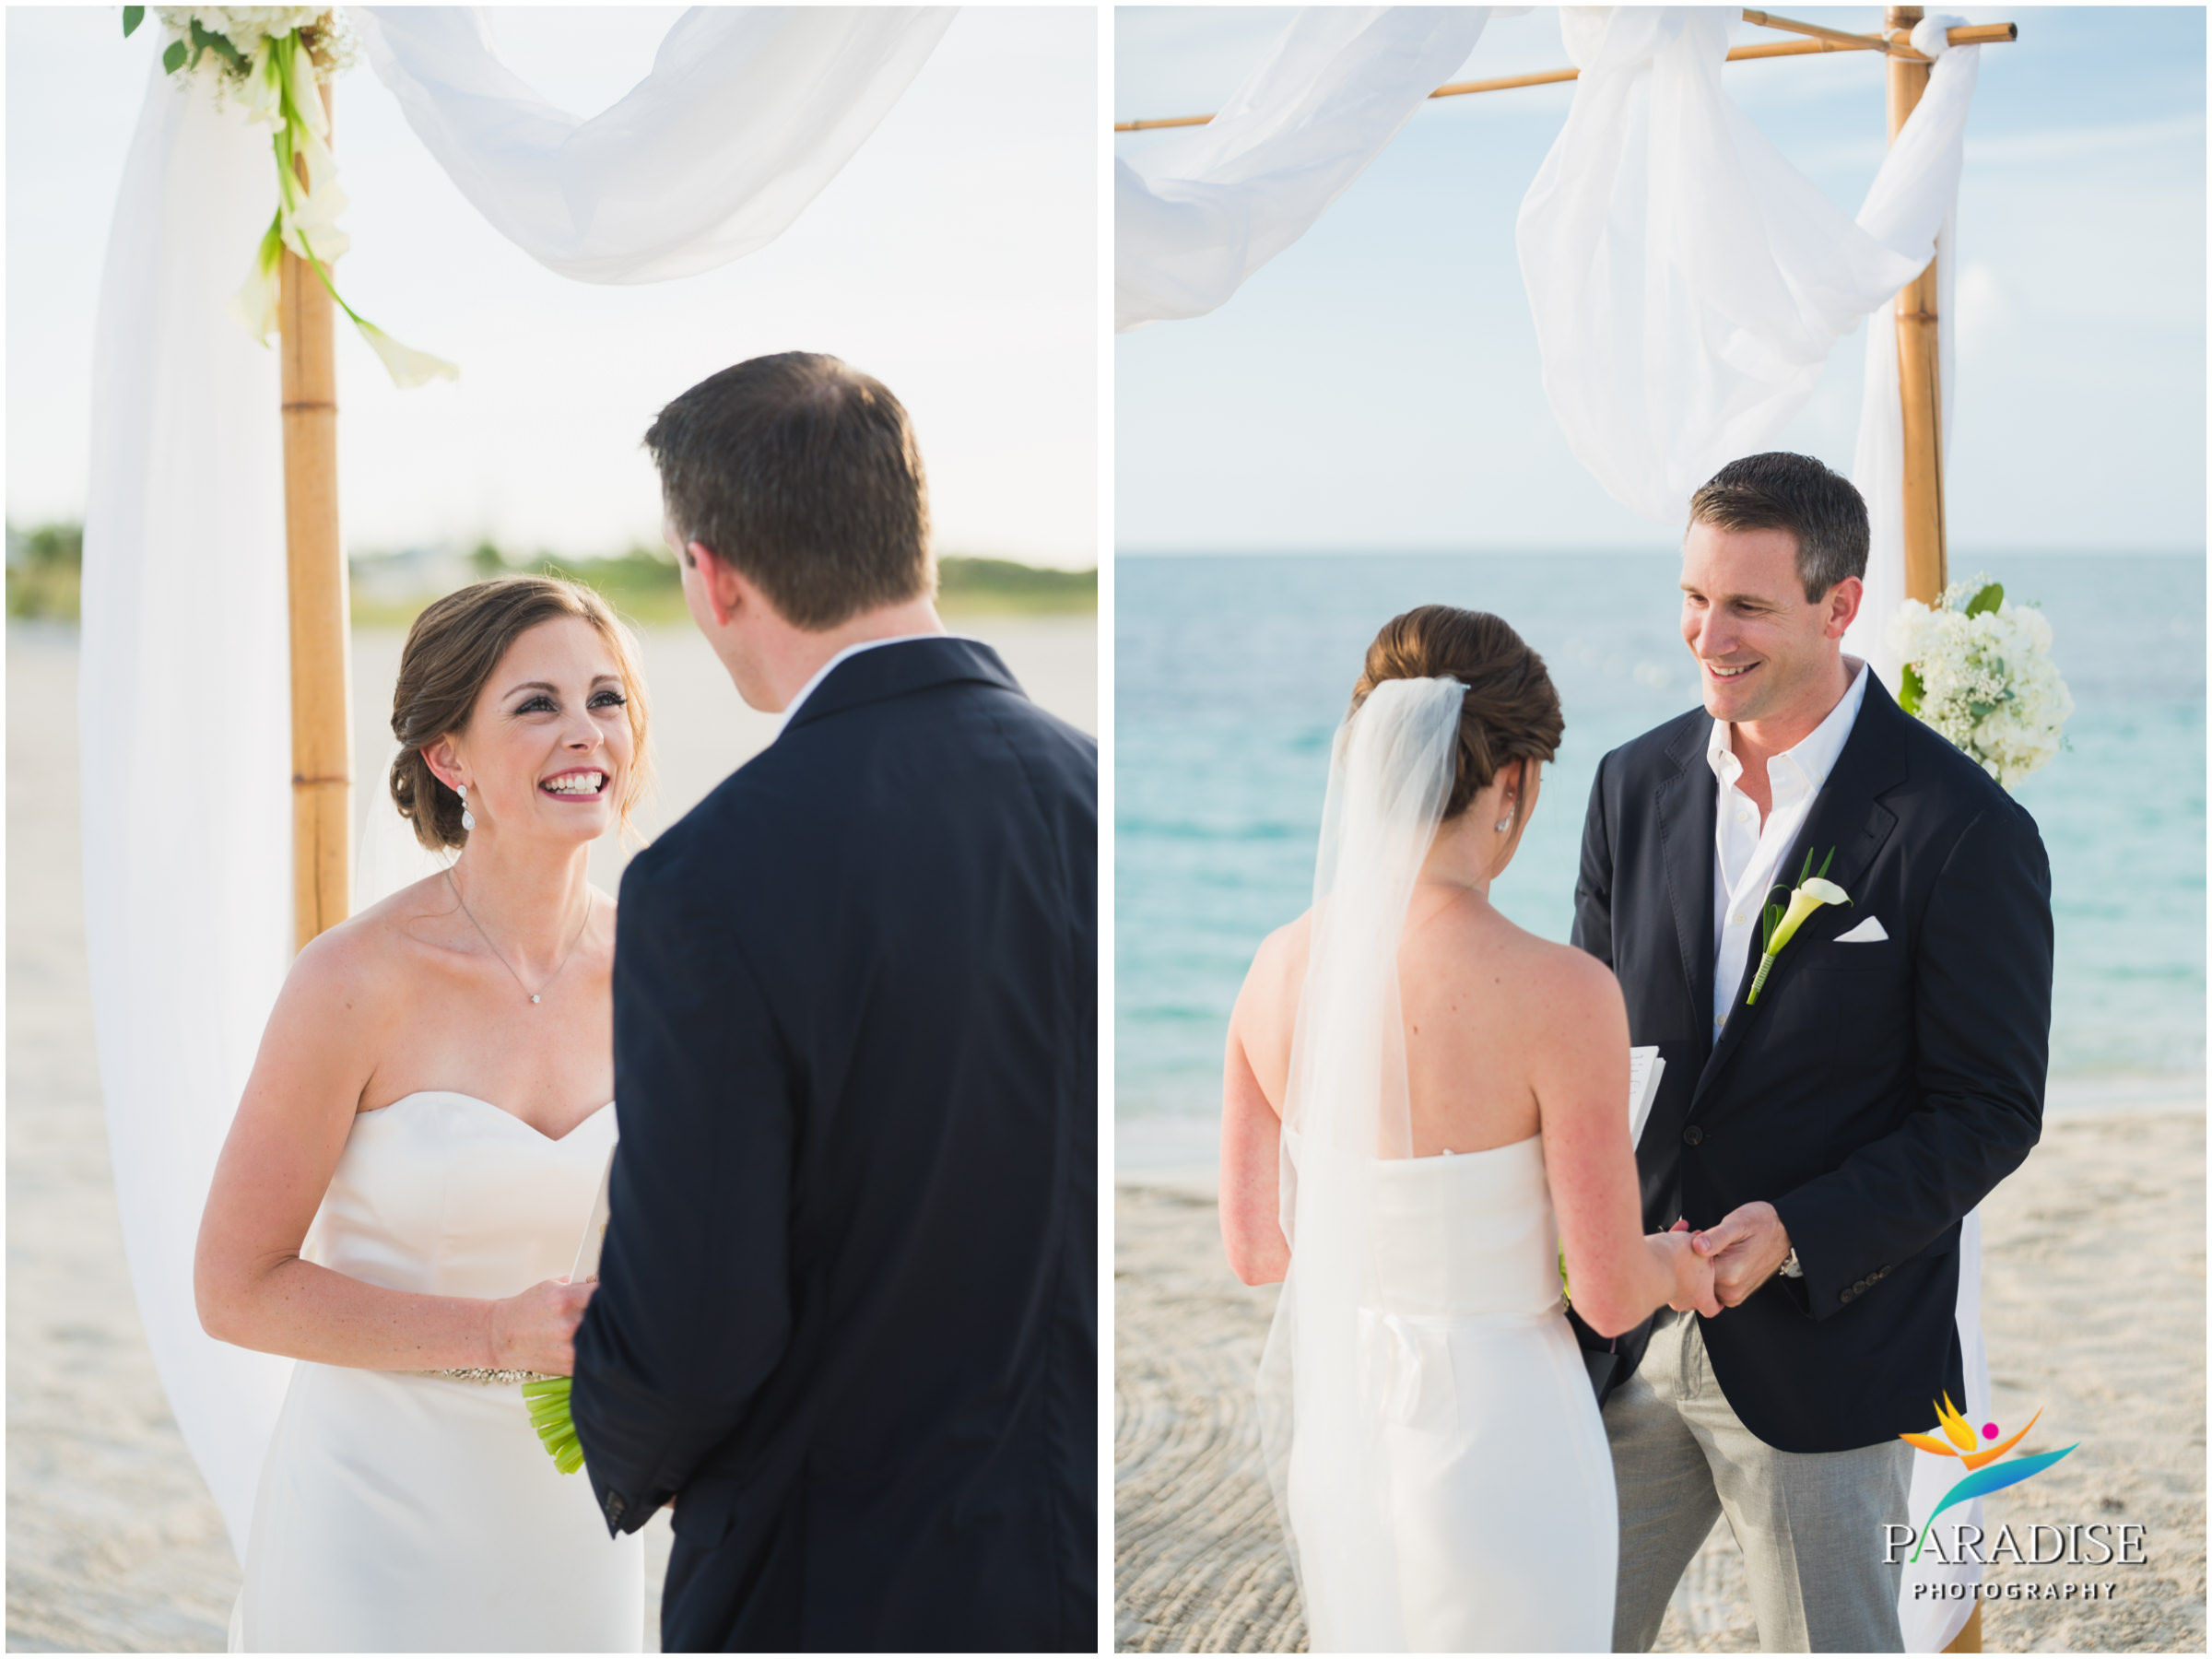 010-turks-and-caicos-destination-wedding-beach-caribbean-photography-photographer-pic-pictures-bride-groom-grace-bay-gansevoort-elopement